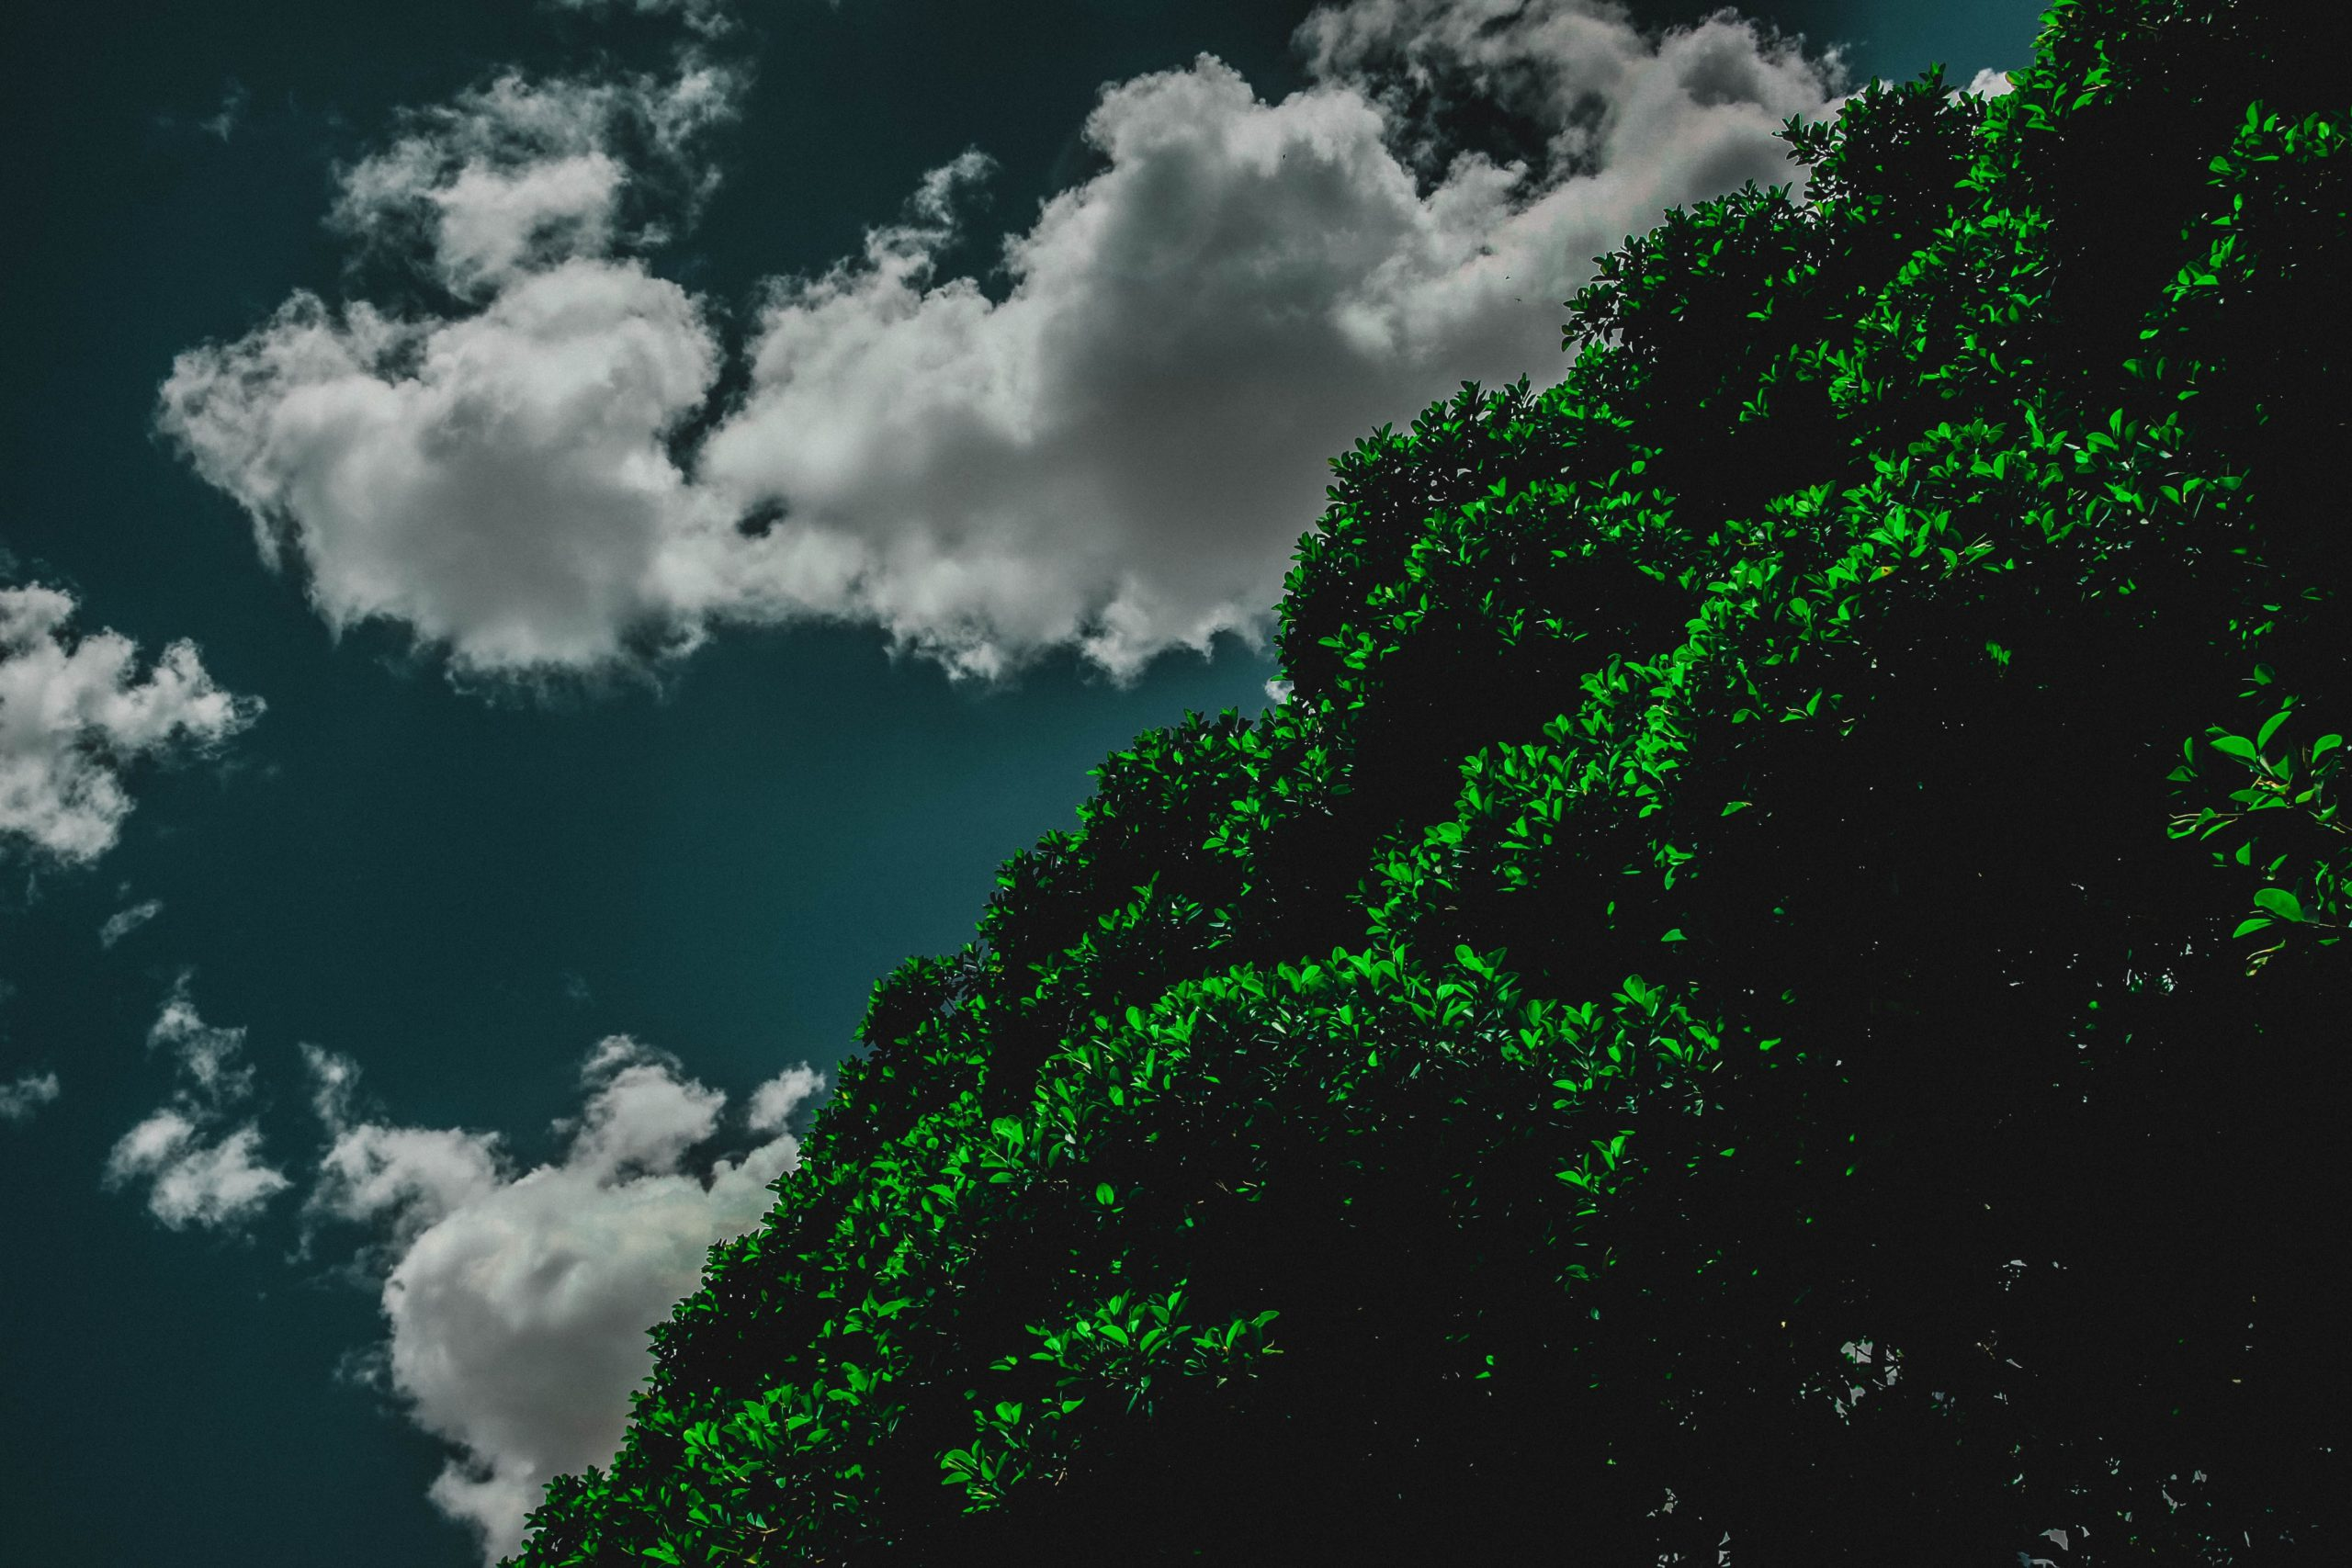 clouds with trees in the background